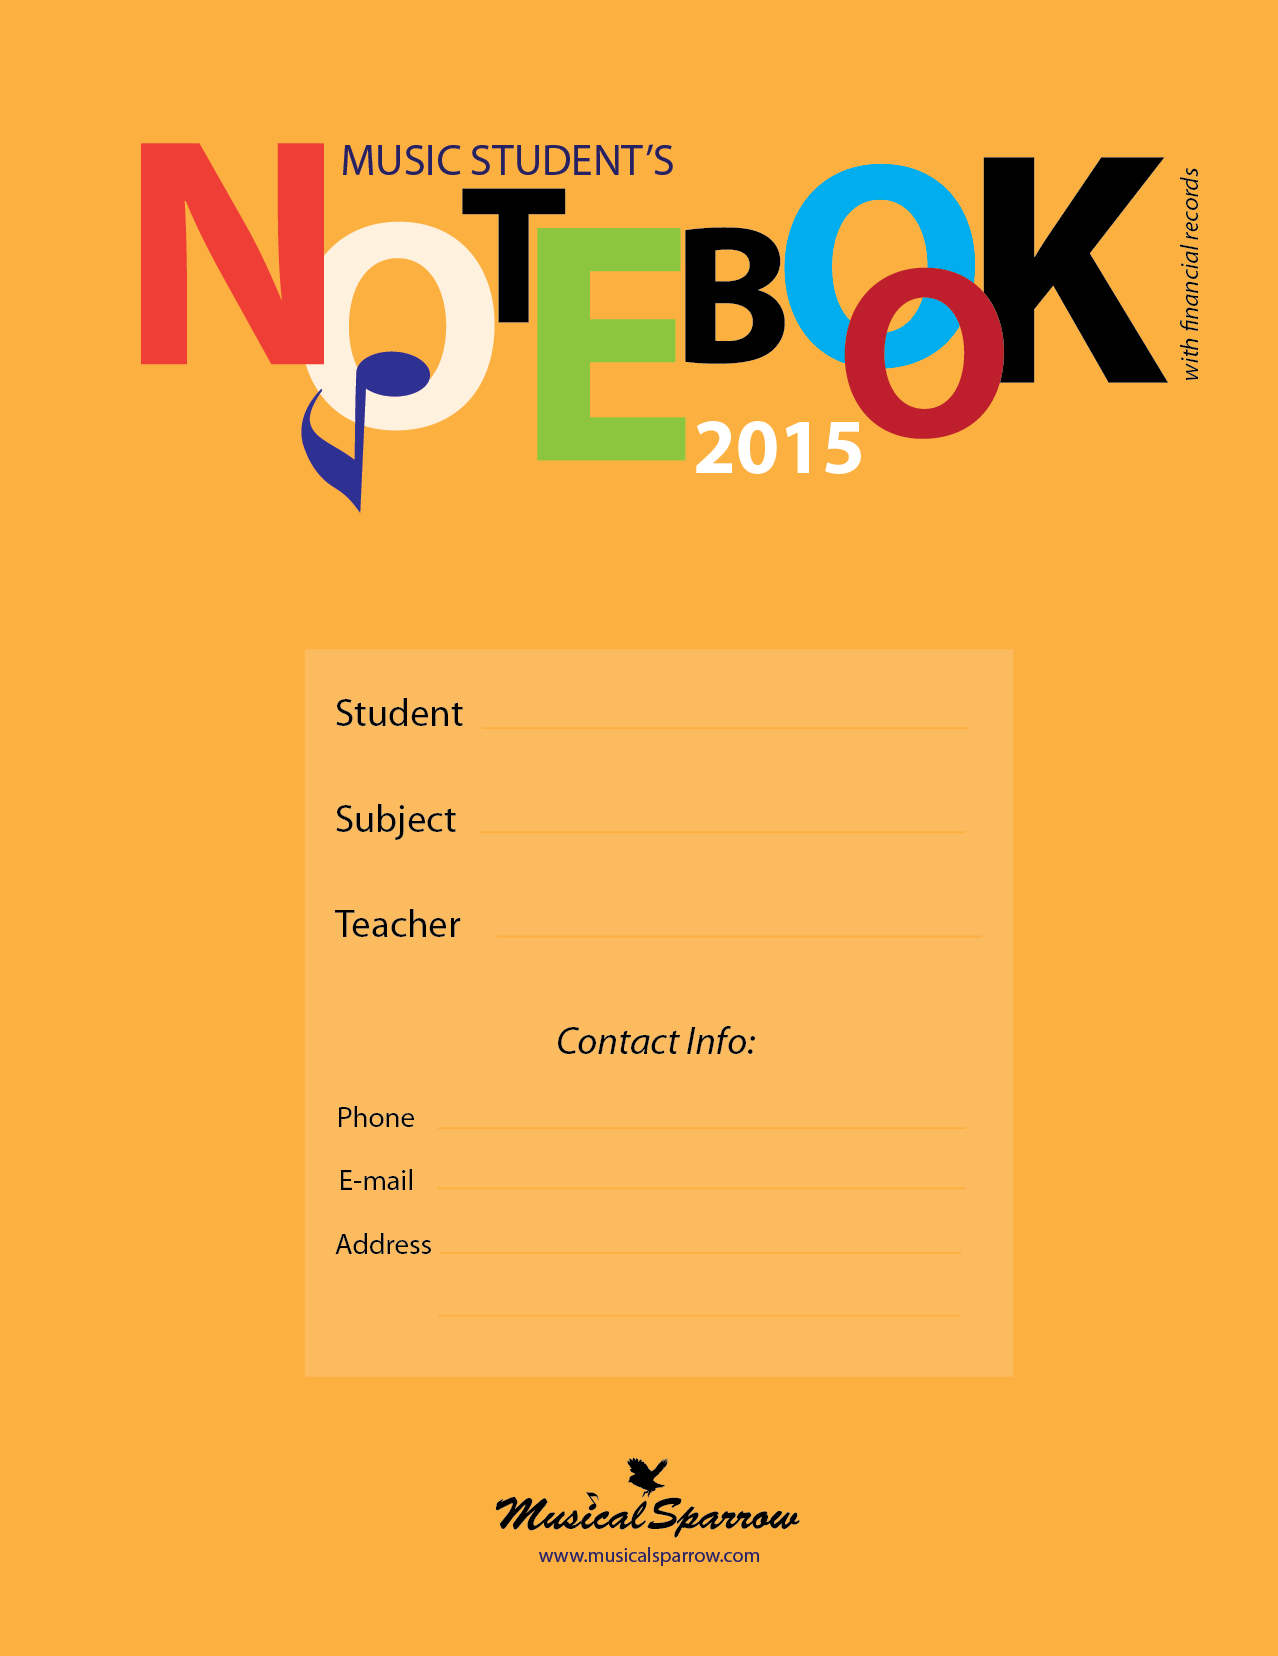 Music Student's Notebook, 2015 (with financial records)